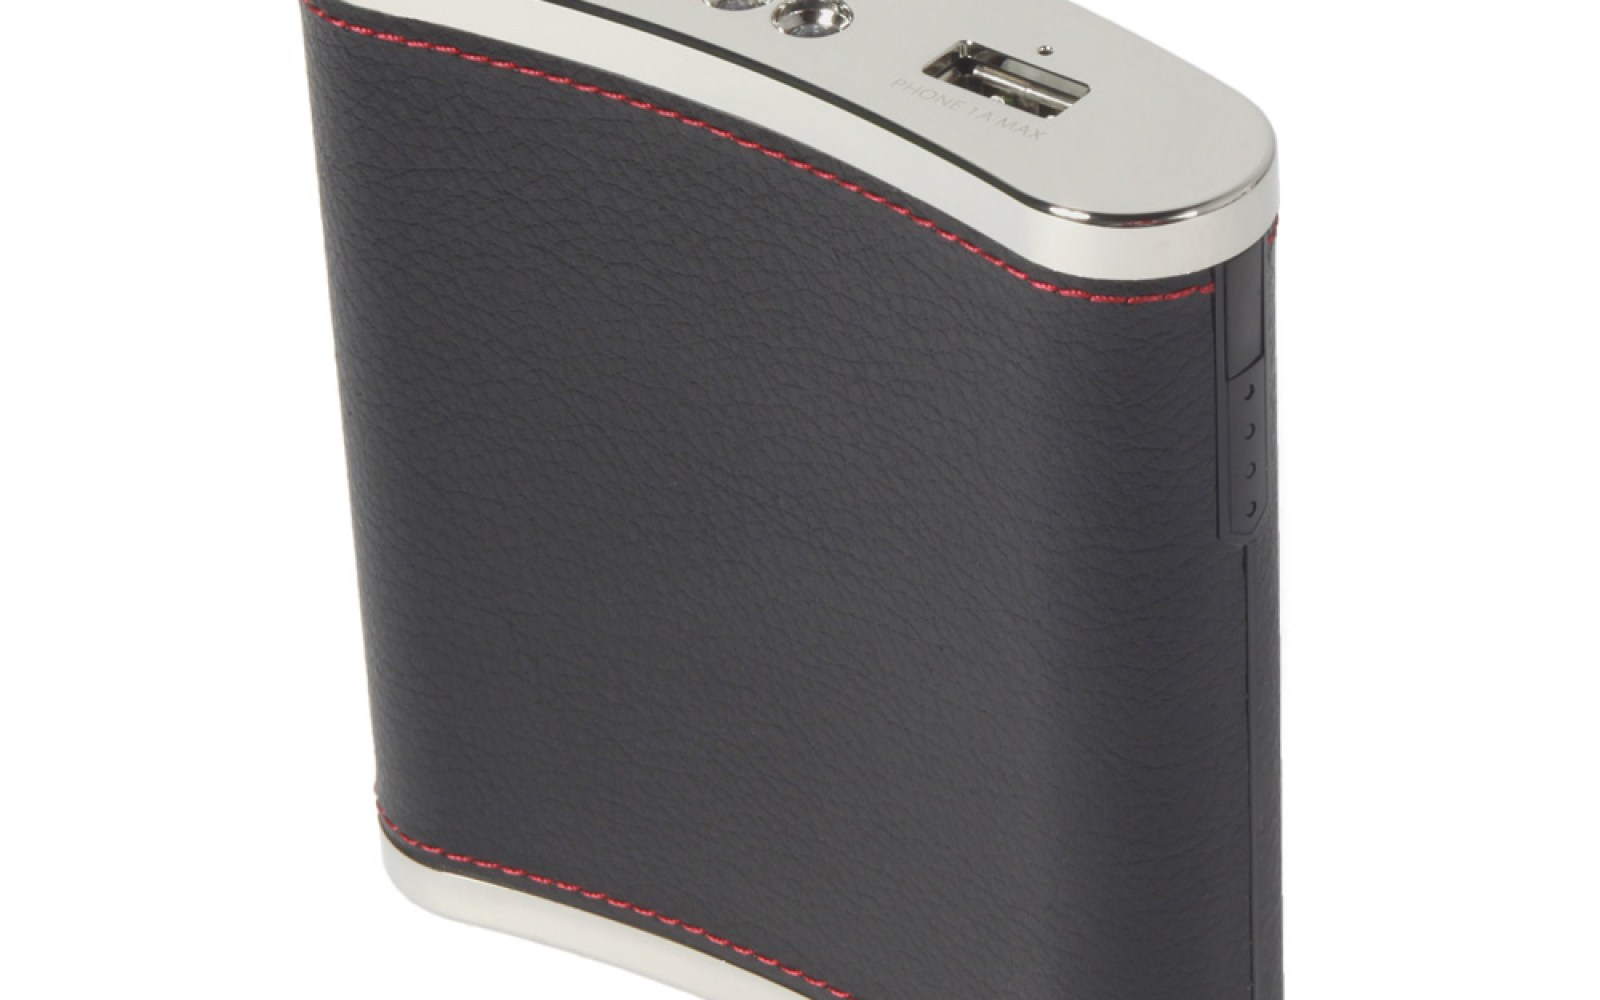 Review: Digital Treasures Powerflask — Is it better than booze?